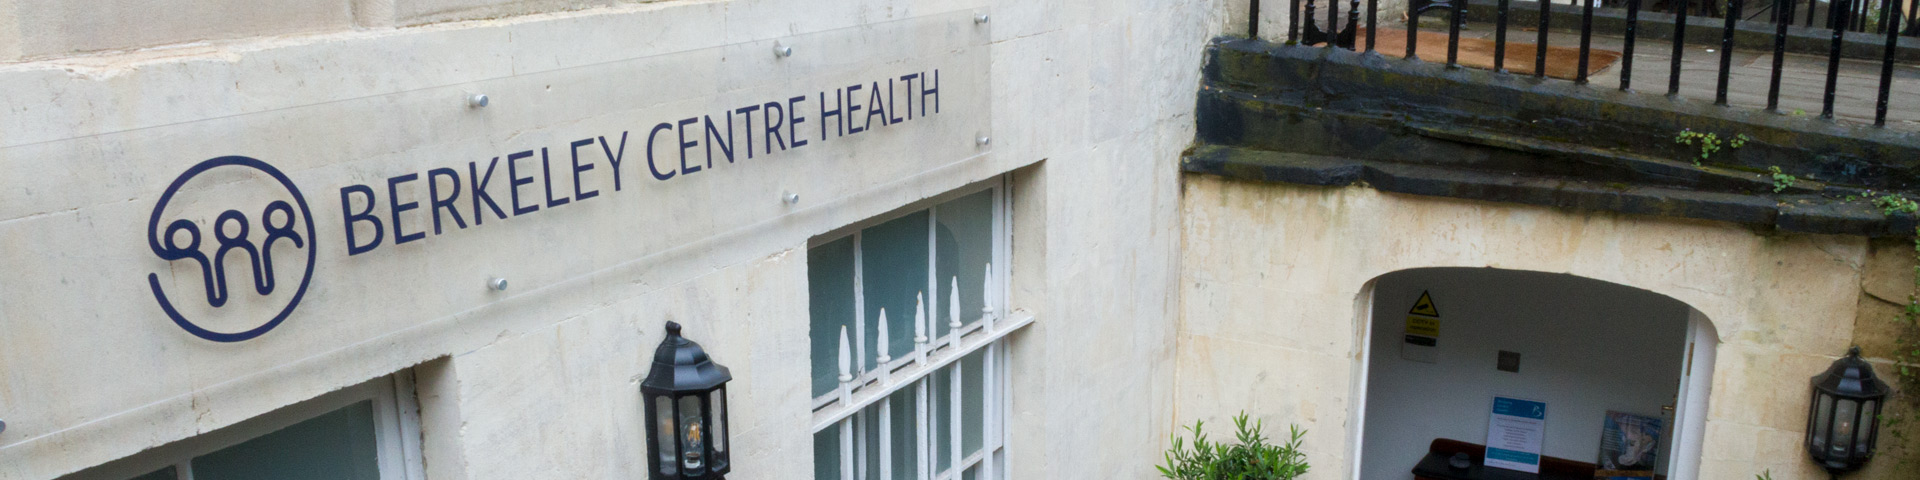 Contact Us - Bristol Sports Therapy and Pain Relief Clinic - EHHP